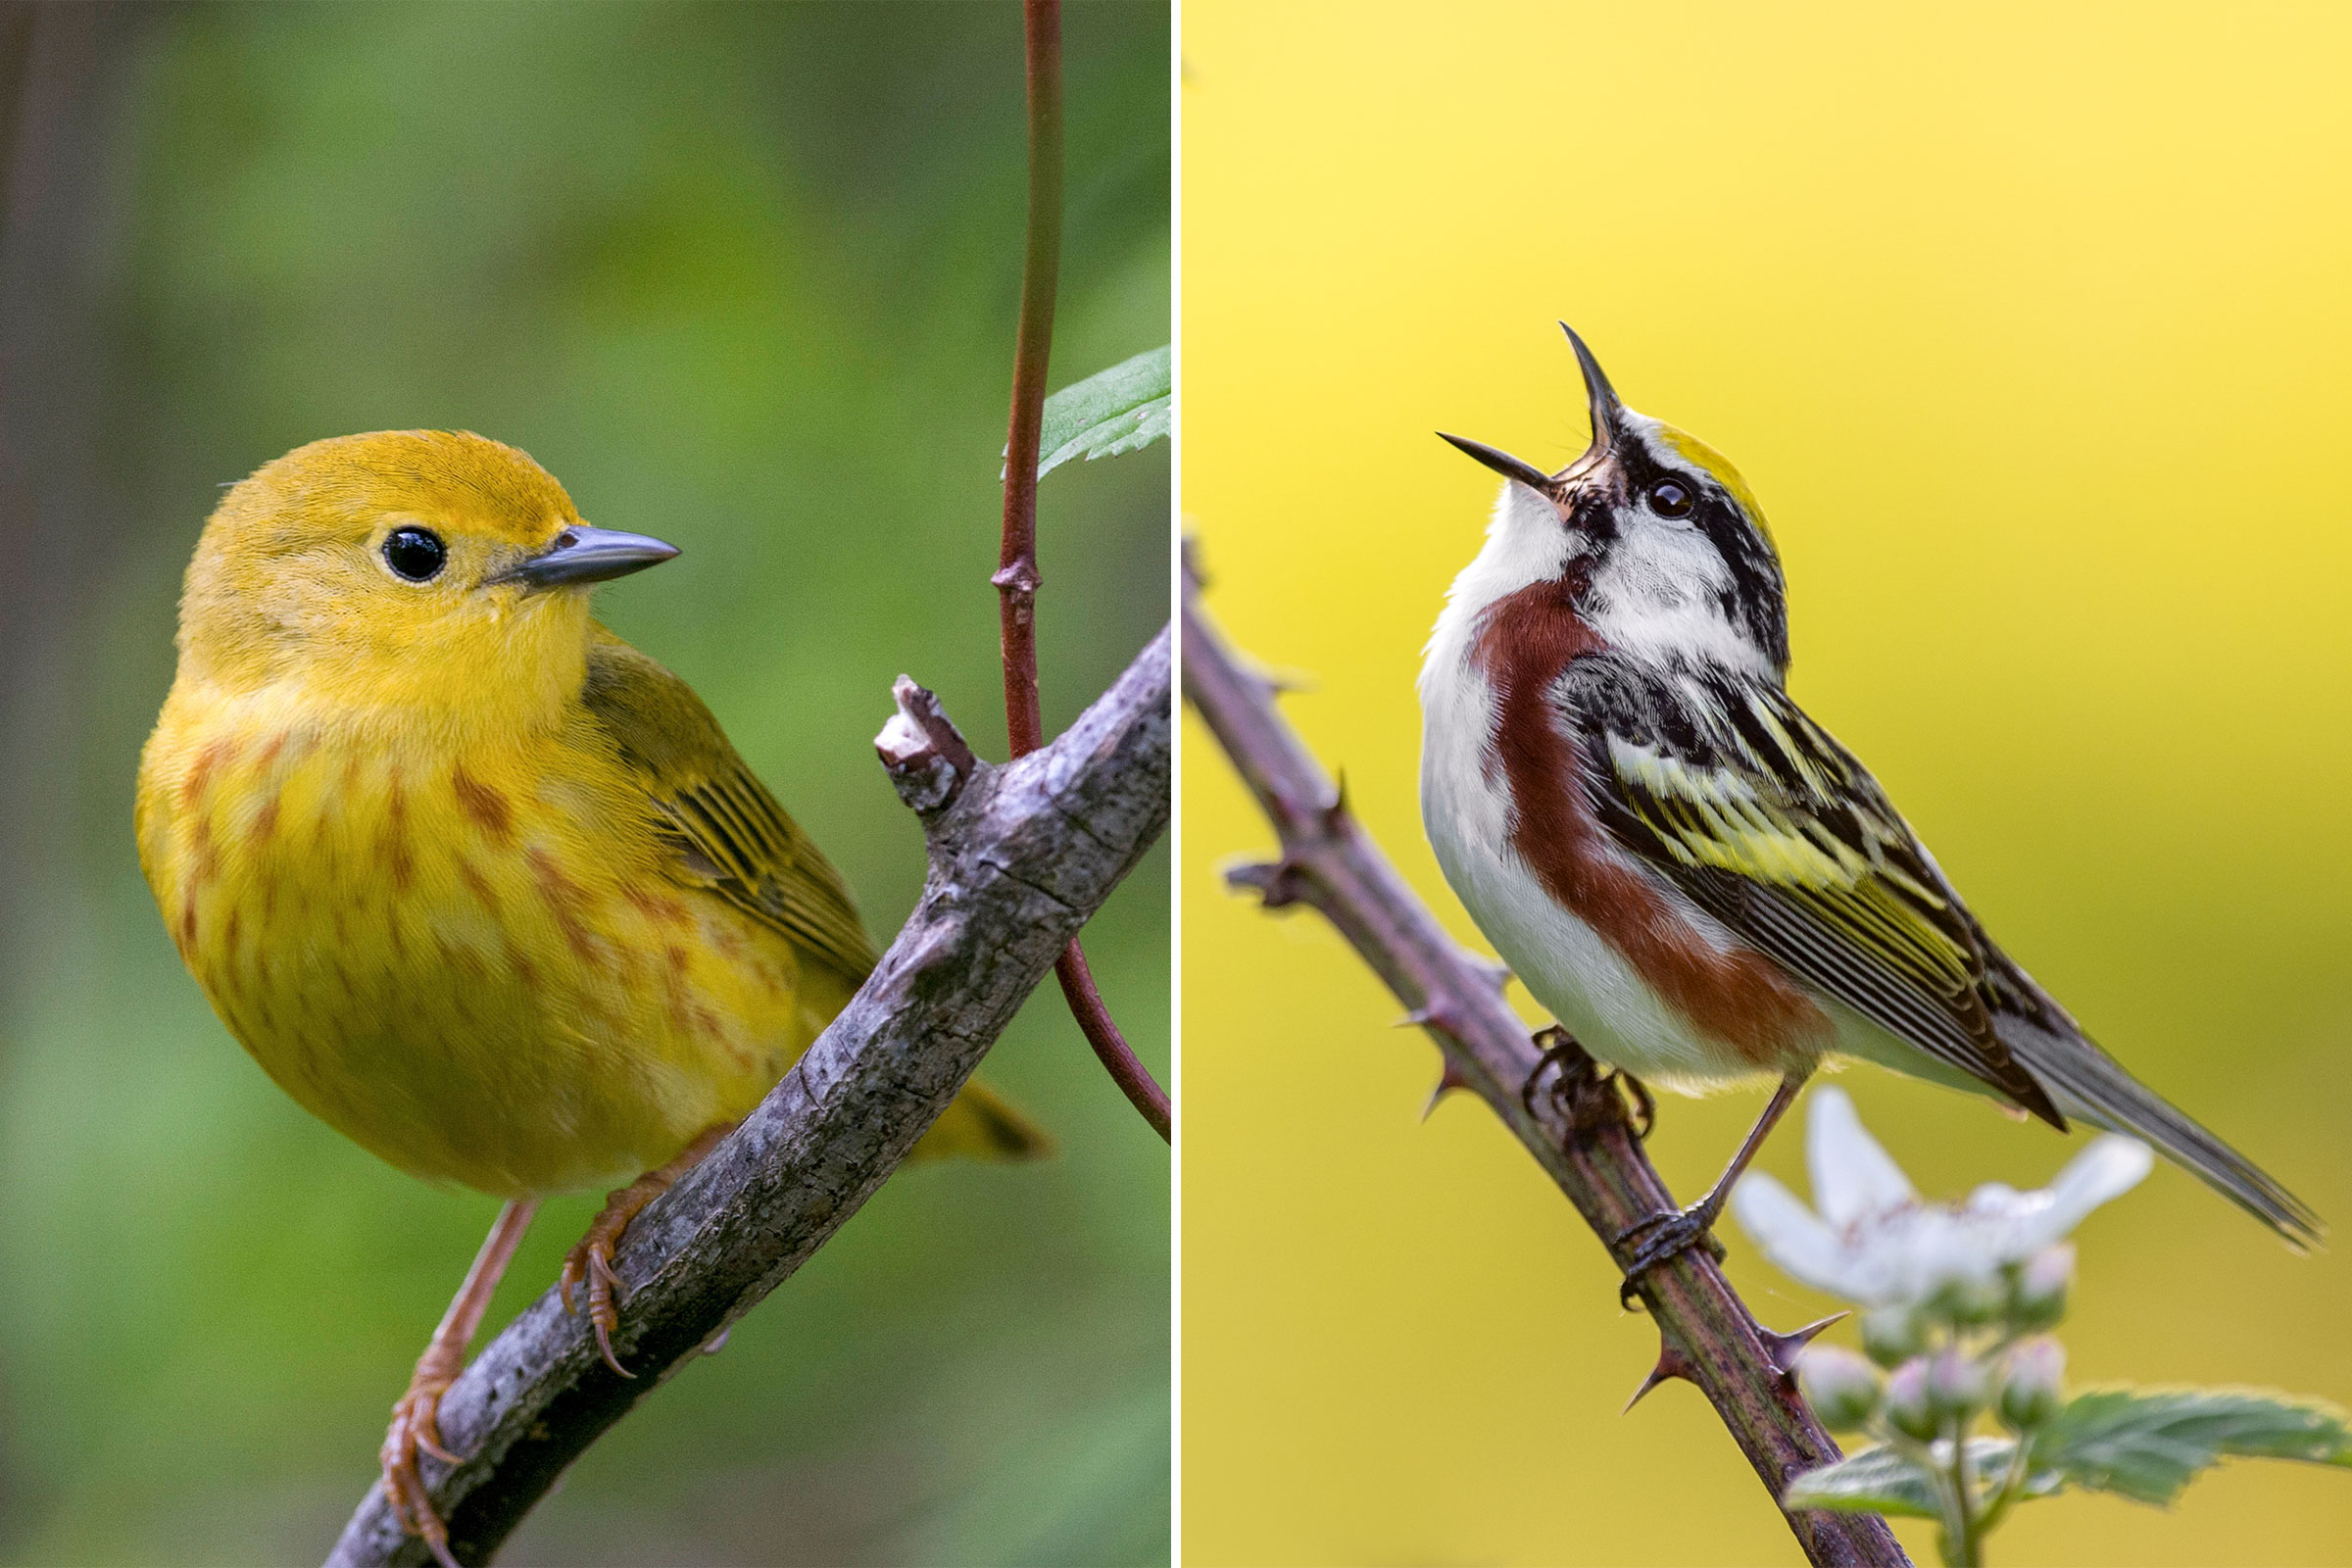 Photos from left: Yellow Warbler, Brian Collier/Audubon Photography Awards; Chestnut-sided Warbler, Ray Hennessy/iStock